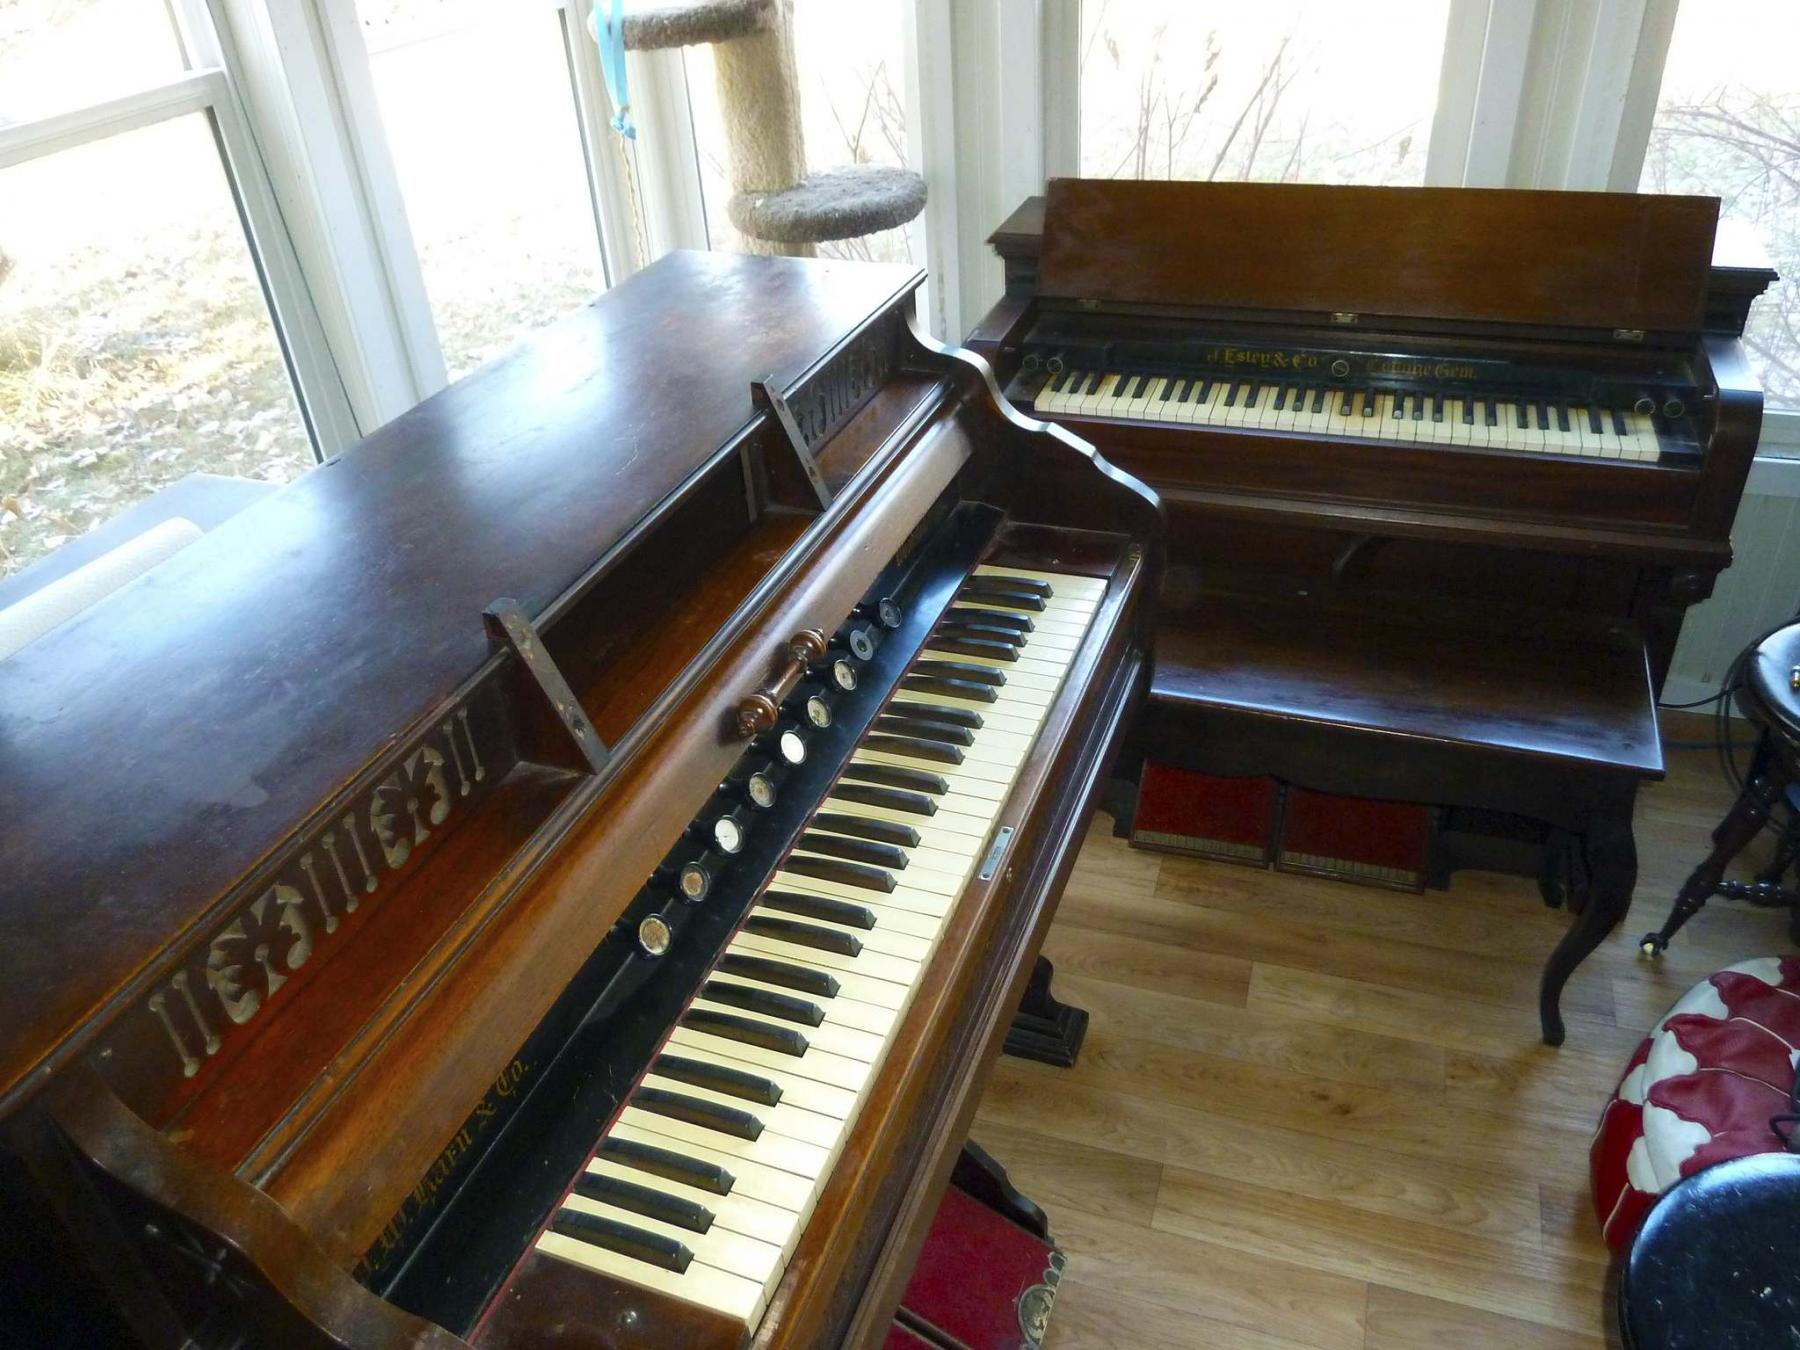 <p>Laurie Mustard / Winnipeg Free Press</p><p>Mustard has been collecting old pianos and organs, but he&rsquo;s running out of room.</p>